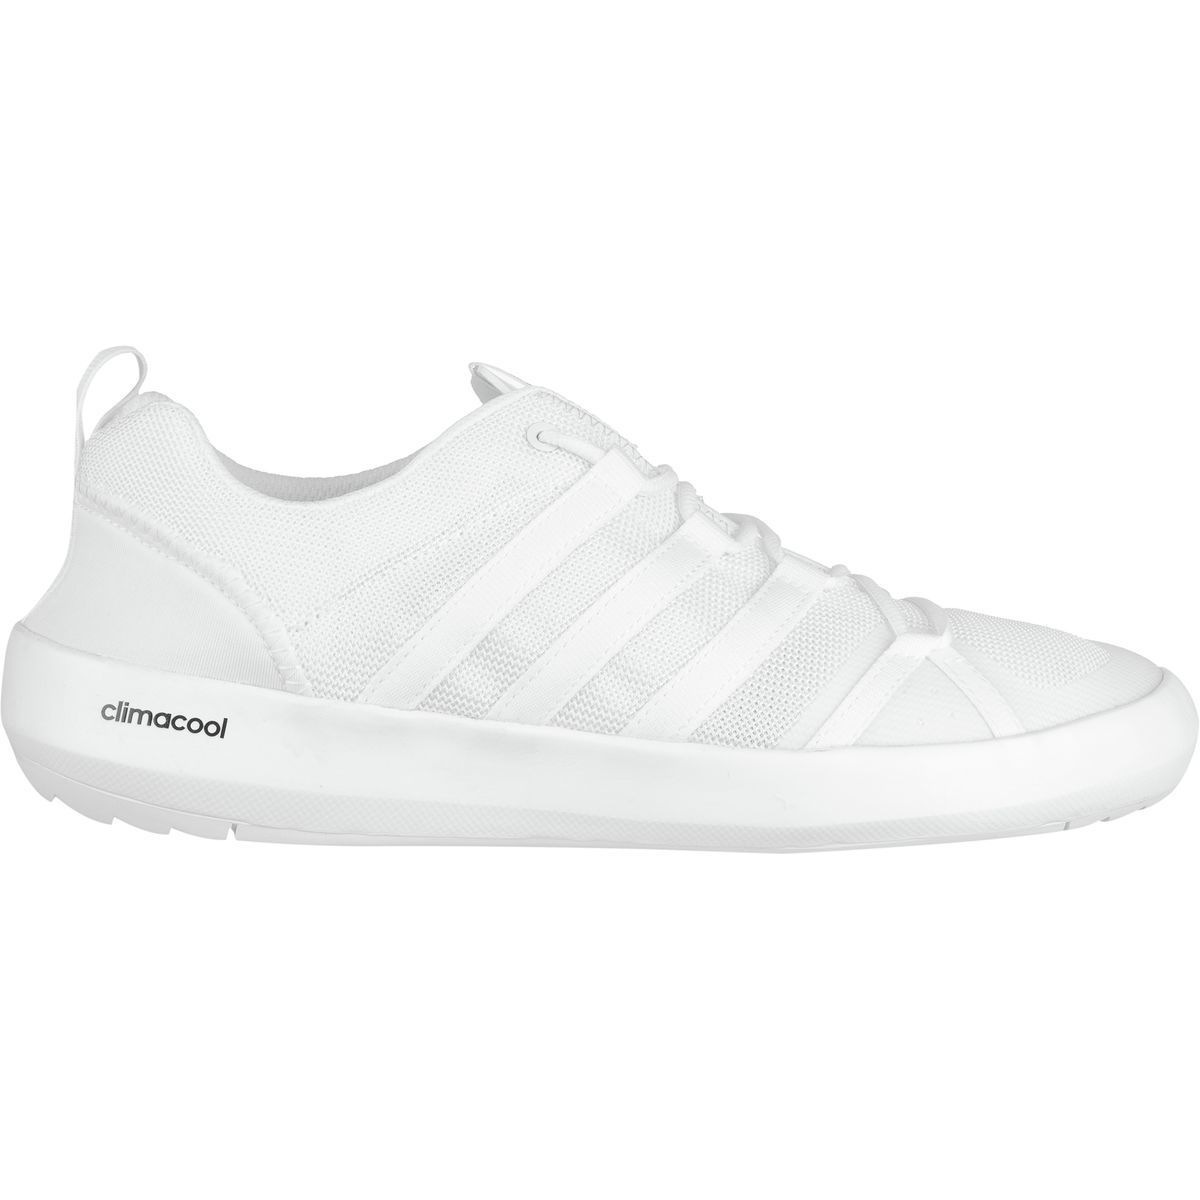 Adidas Outdoor Climacool Boat Lace Shoe Mens